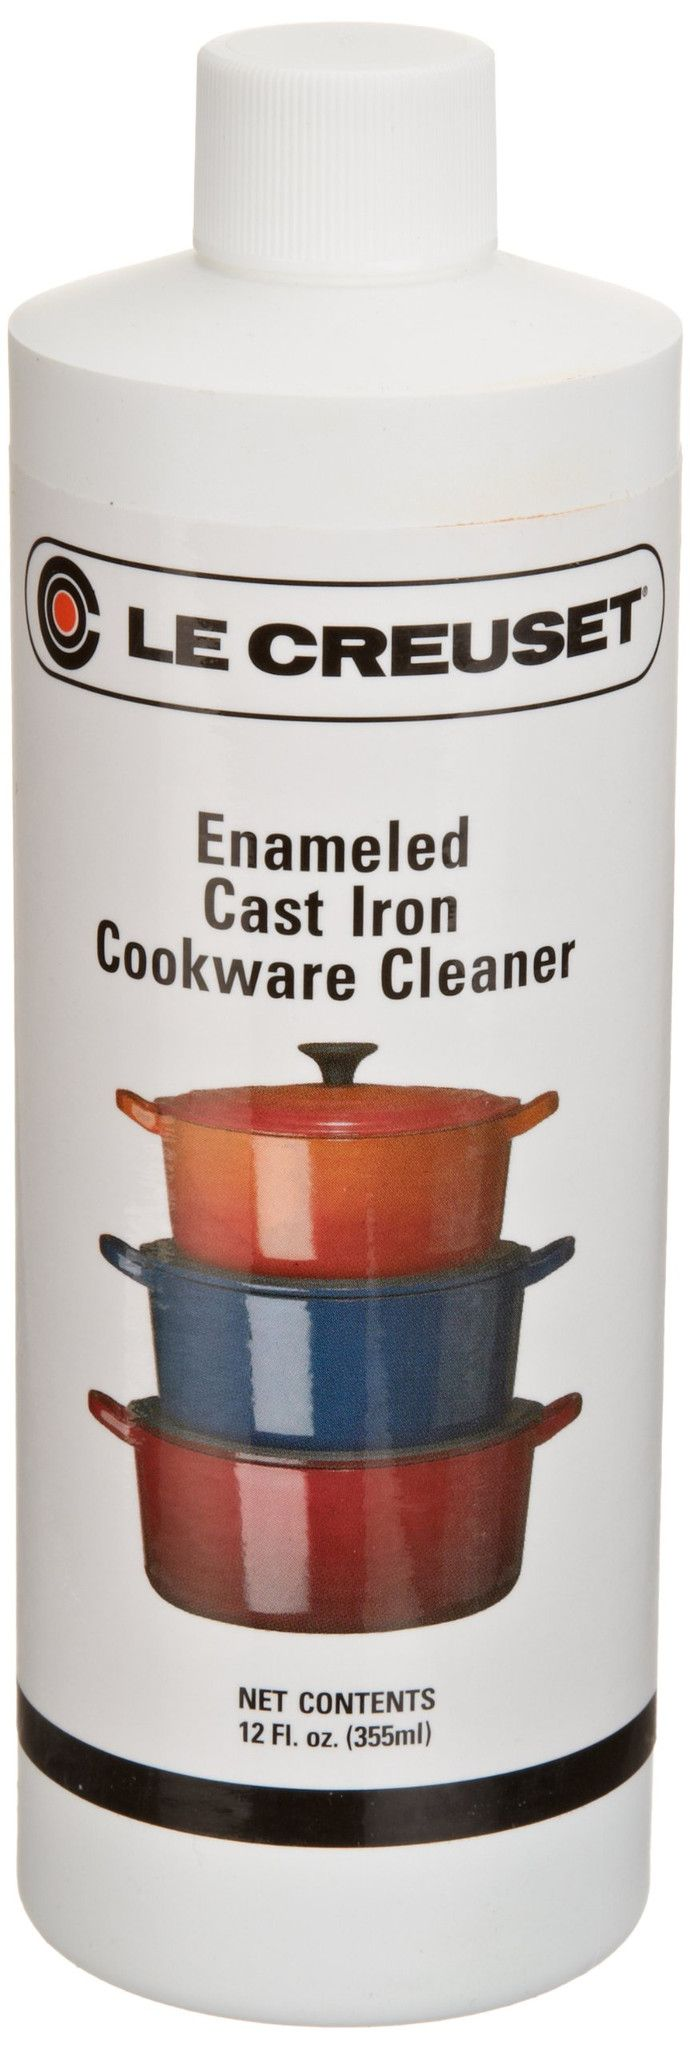 how to clean le creuset cast iron cookware